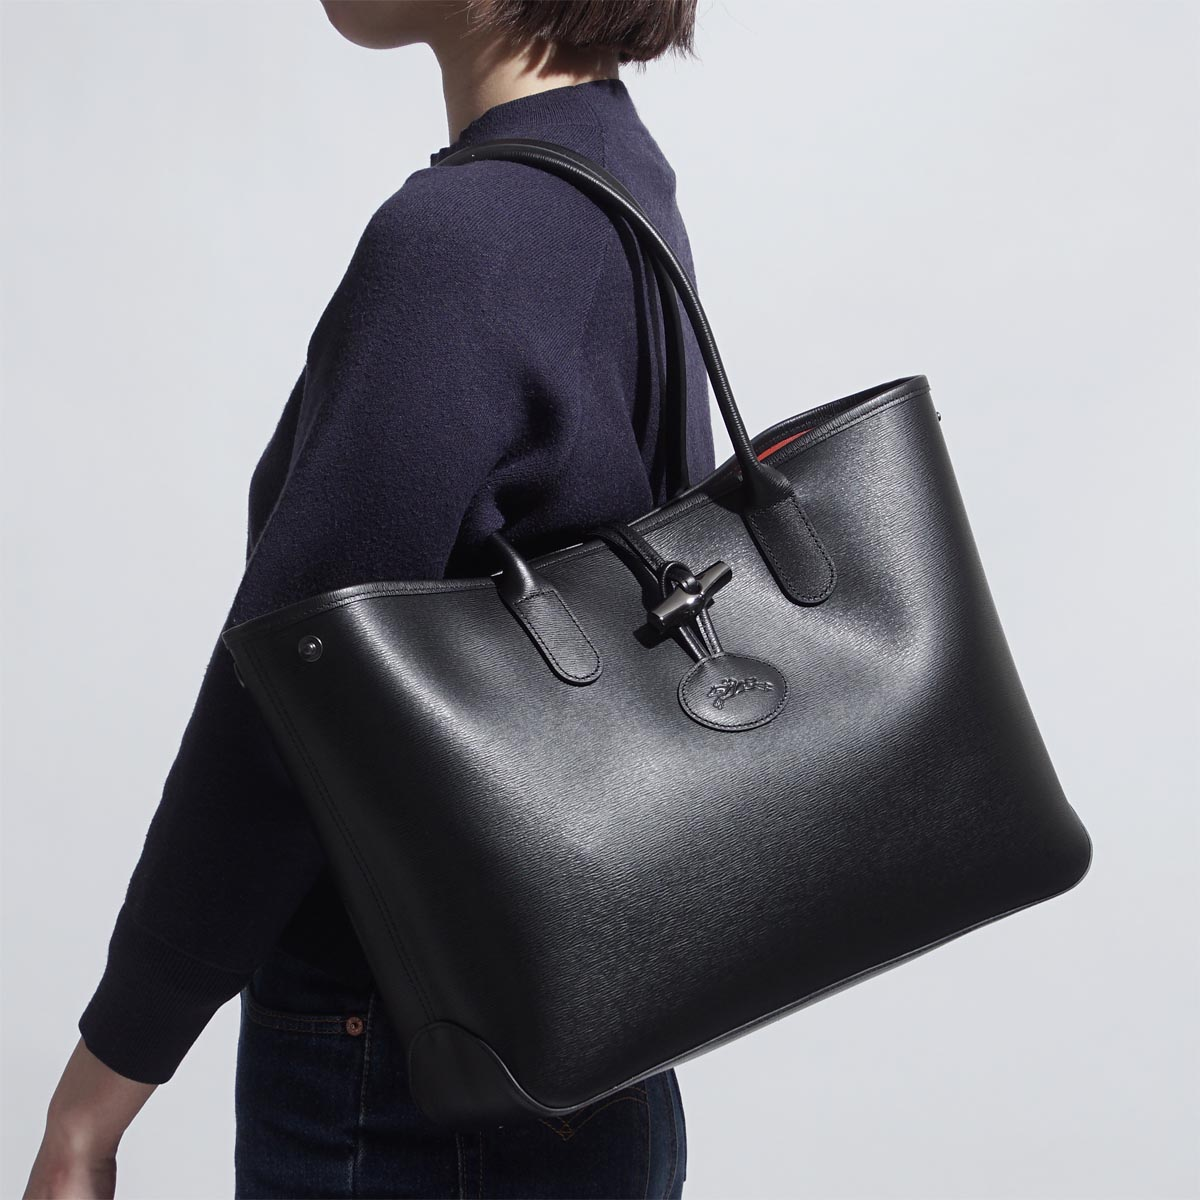 b304b9a8eee5 Longchamp LONGCHAMP tote bag Lady s black shoulder bag commuting leather  2686 871 001 Roseau LEATHER